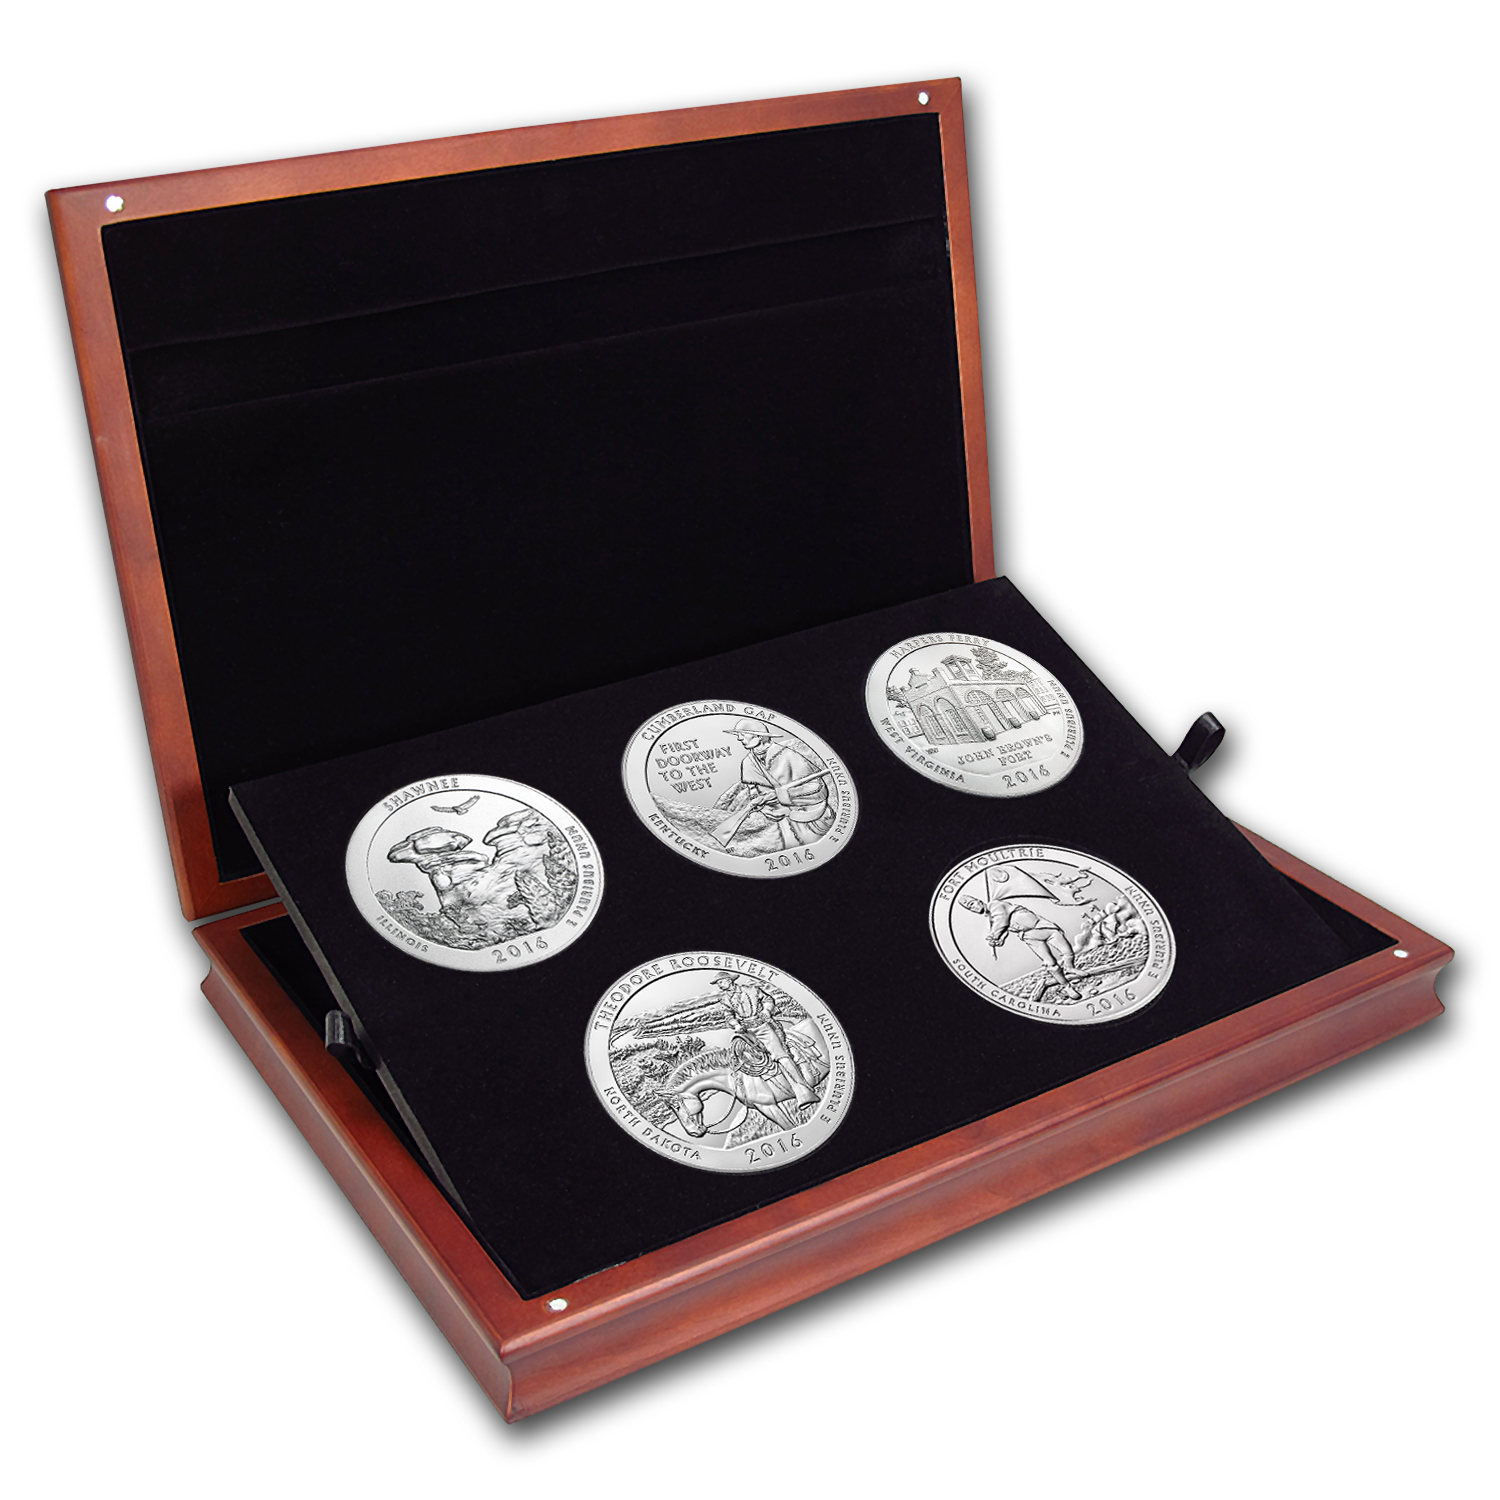 2016 5 oz Silver ATB 5-Coin Set (Elegant Display Box)